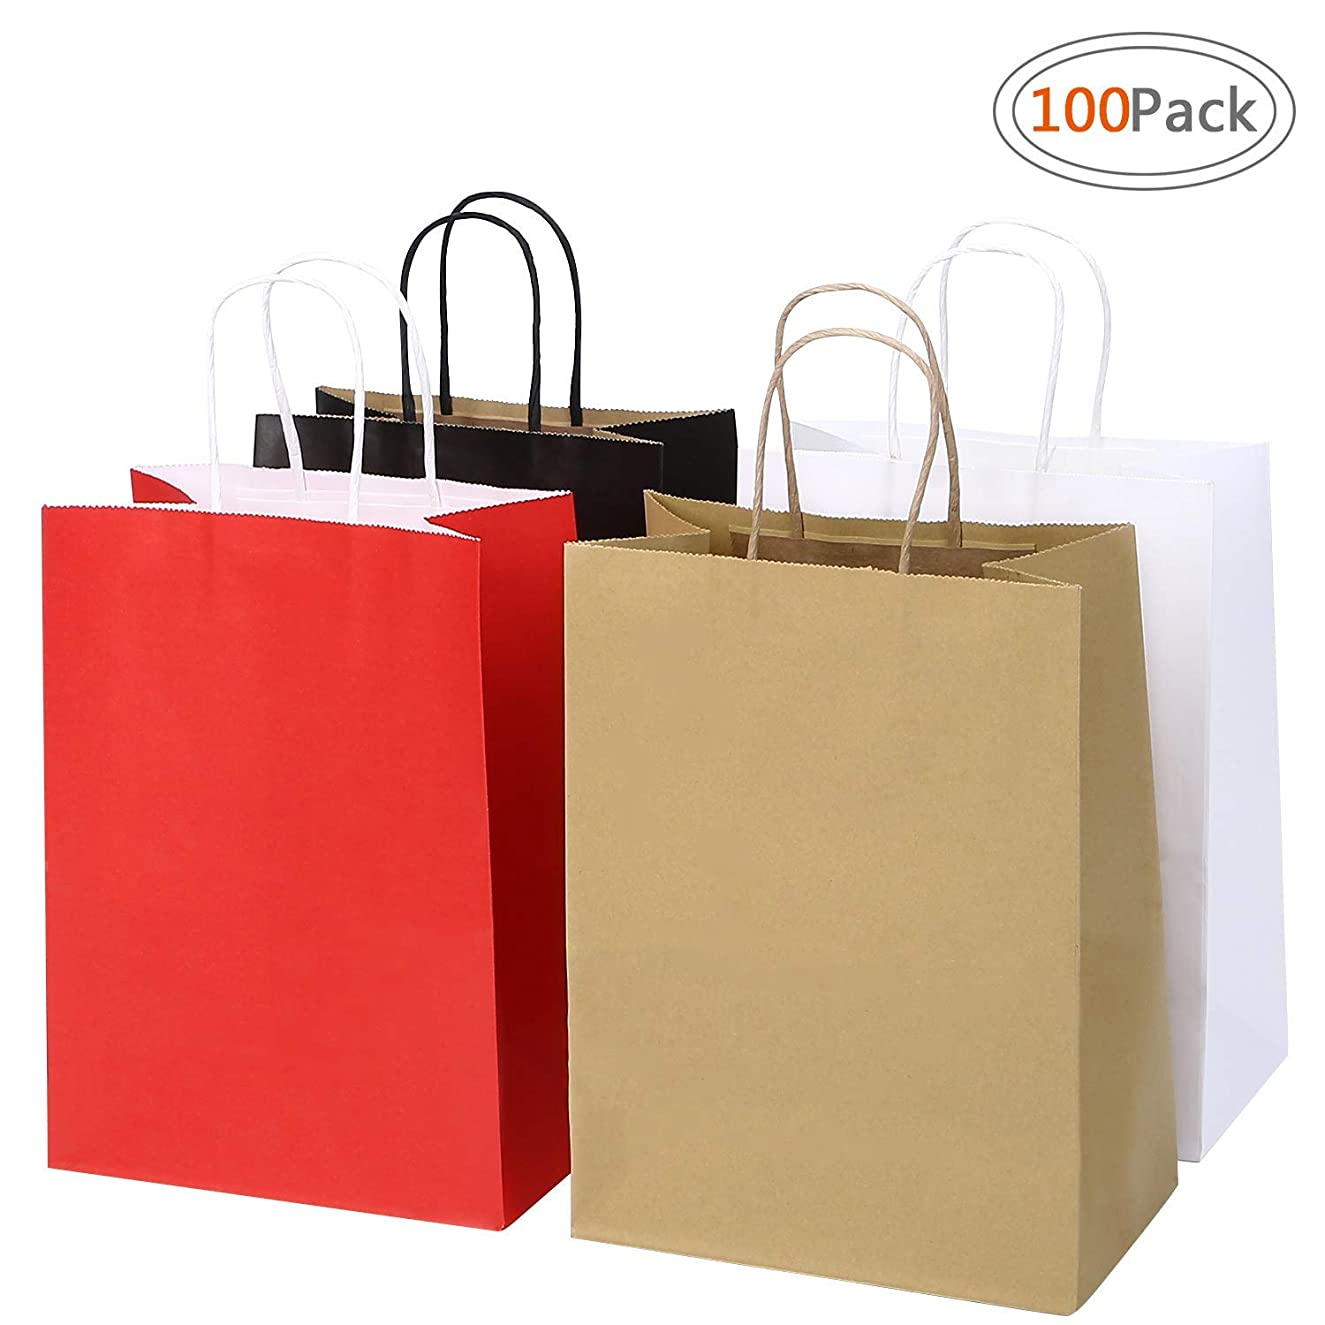 Road 8x4.75x10.5 Inches 100pcs Assorted Kraft Paper Bags, Multi Color Retail Paper Bags with Handles, Merchandise Bag, Gift Bag, Wedding Party Bag